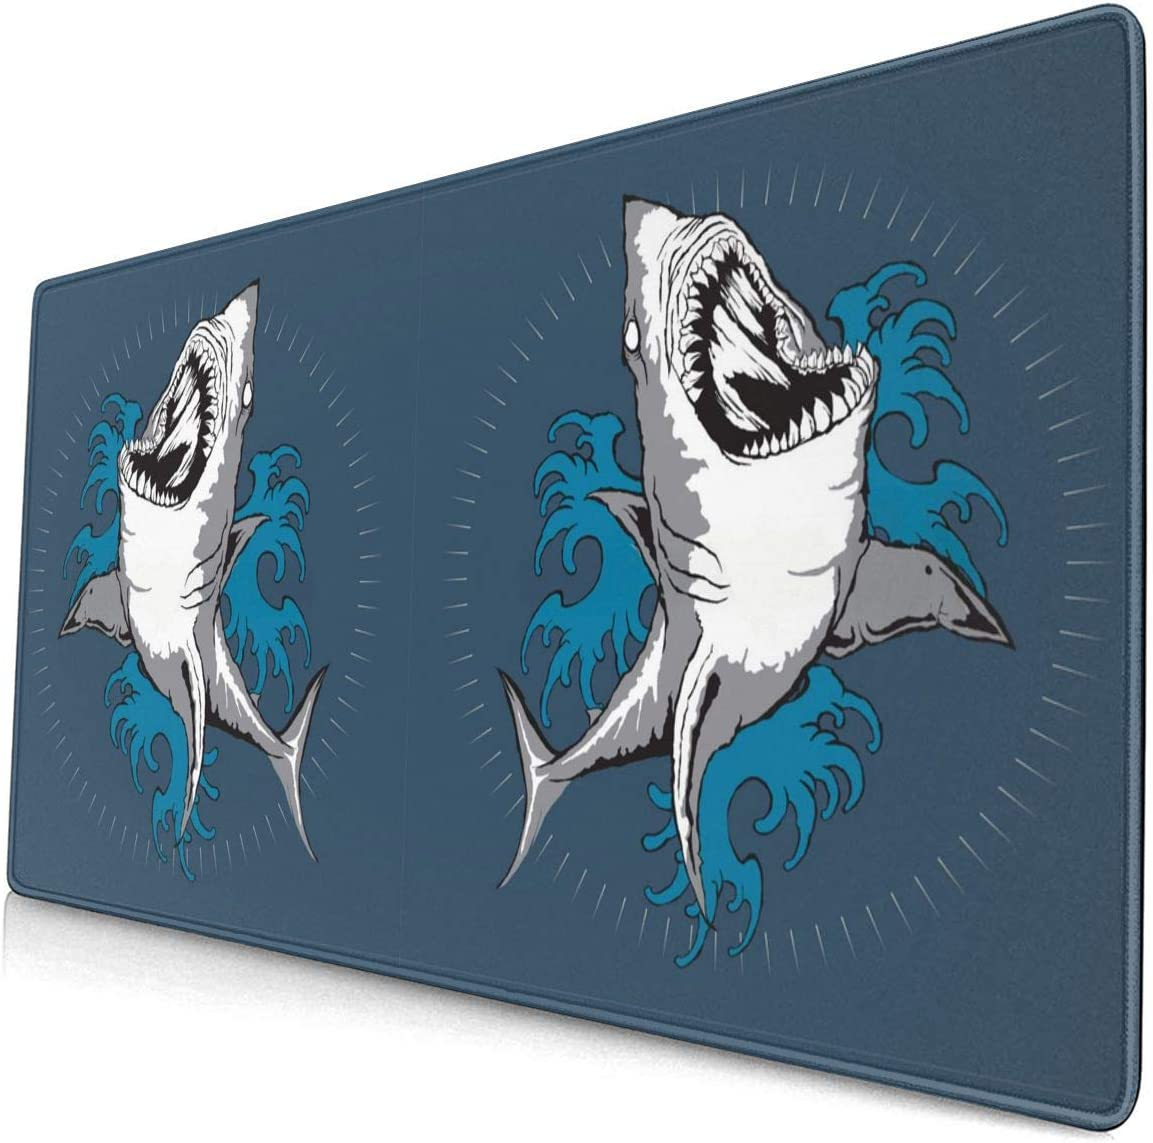 Shark Tattoo Art Mouse Pads for Computers Laptop Gaming Office & Home,Durable, Comfortable and Smooth Large-Size Gaming Mouse Pad Mouse Mat(15.8 X 29.5 Inches)